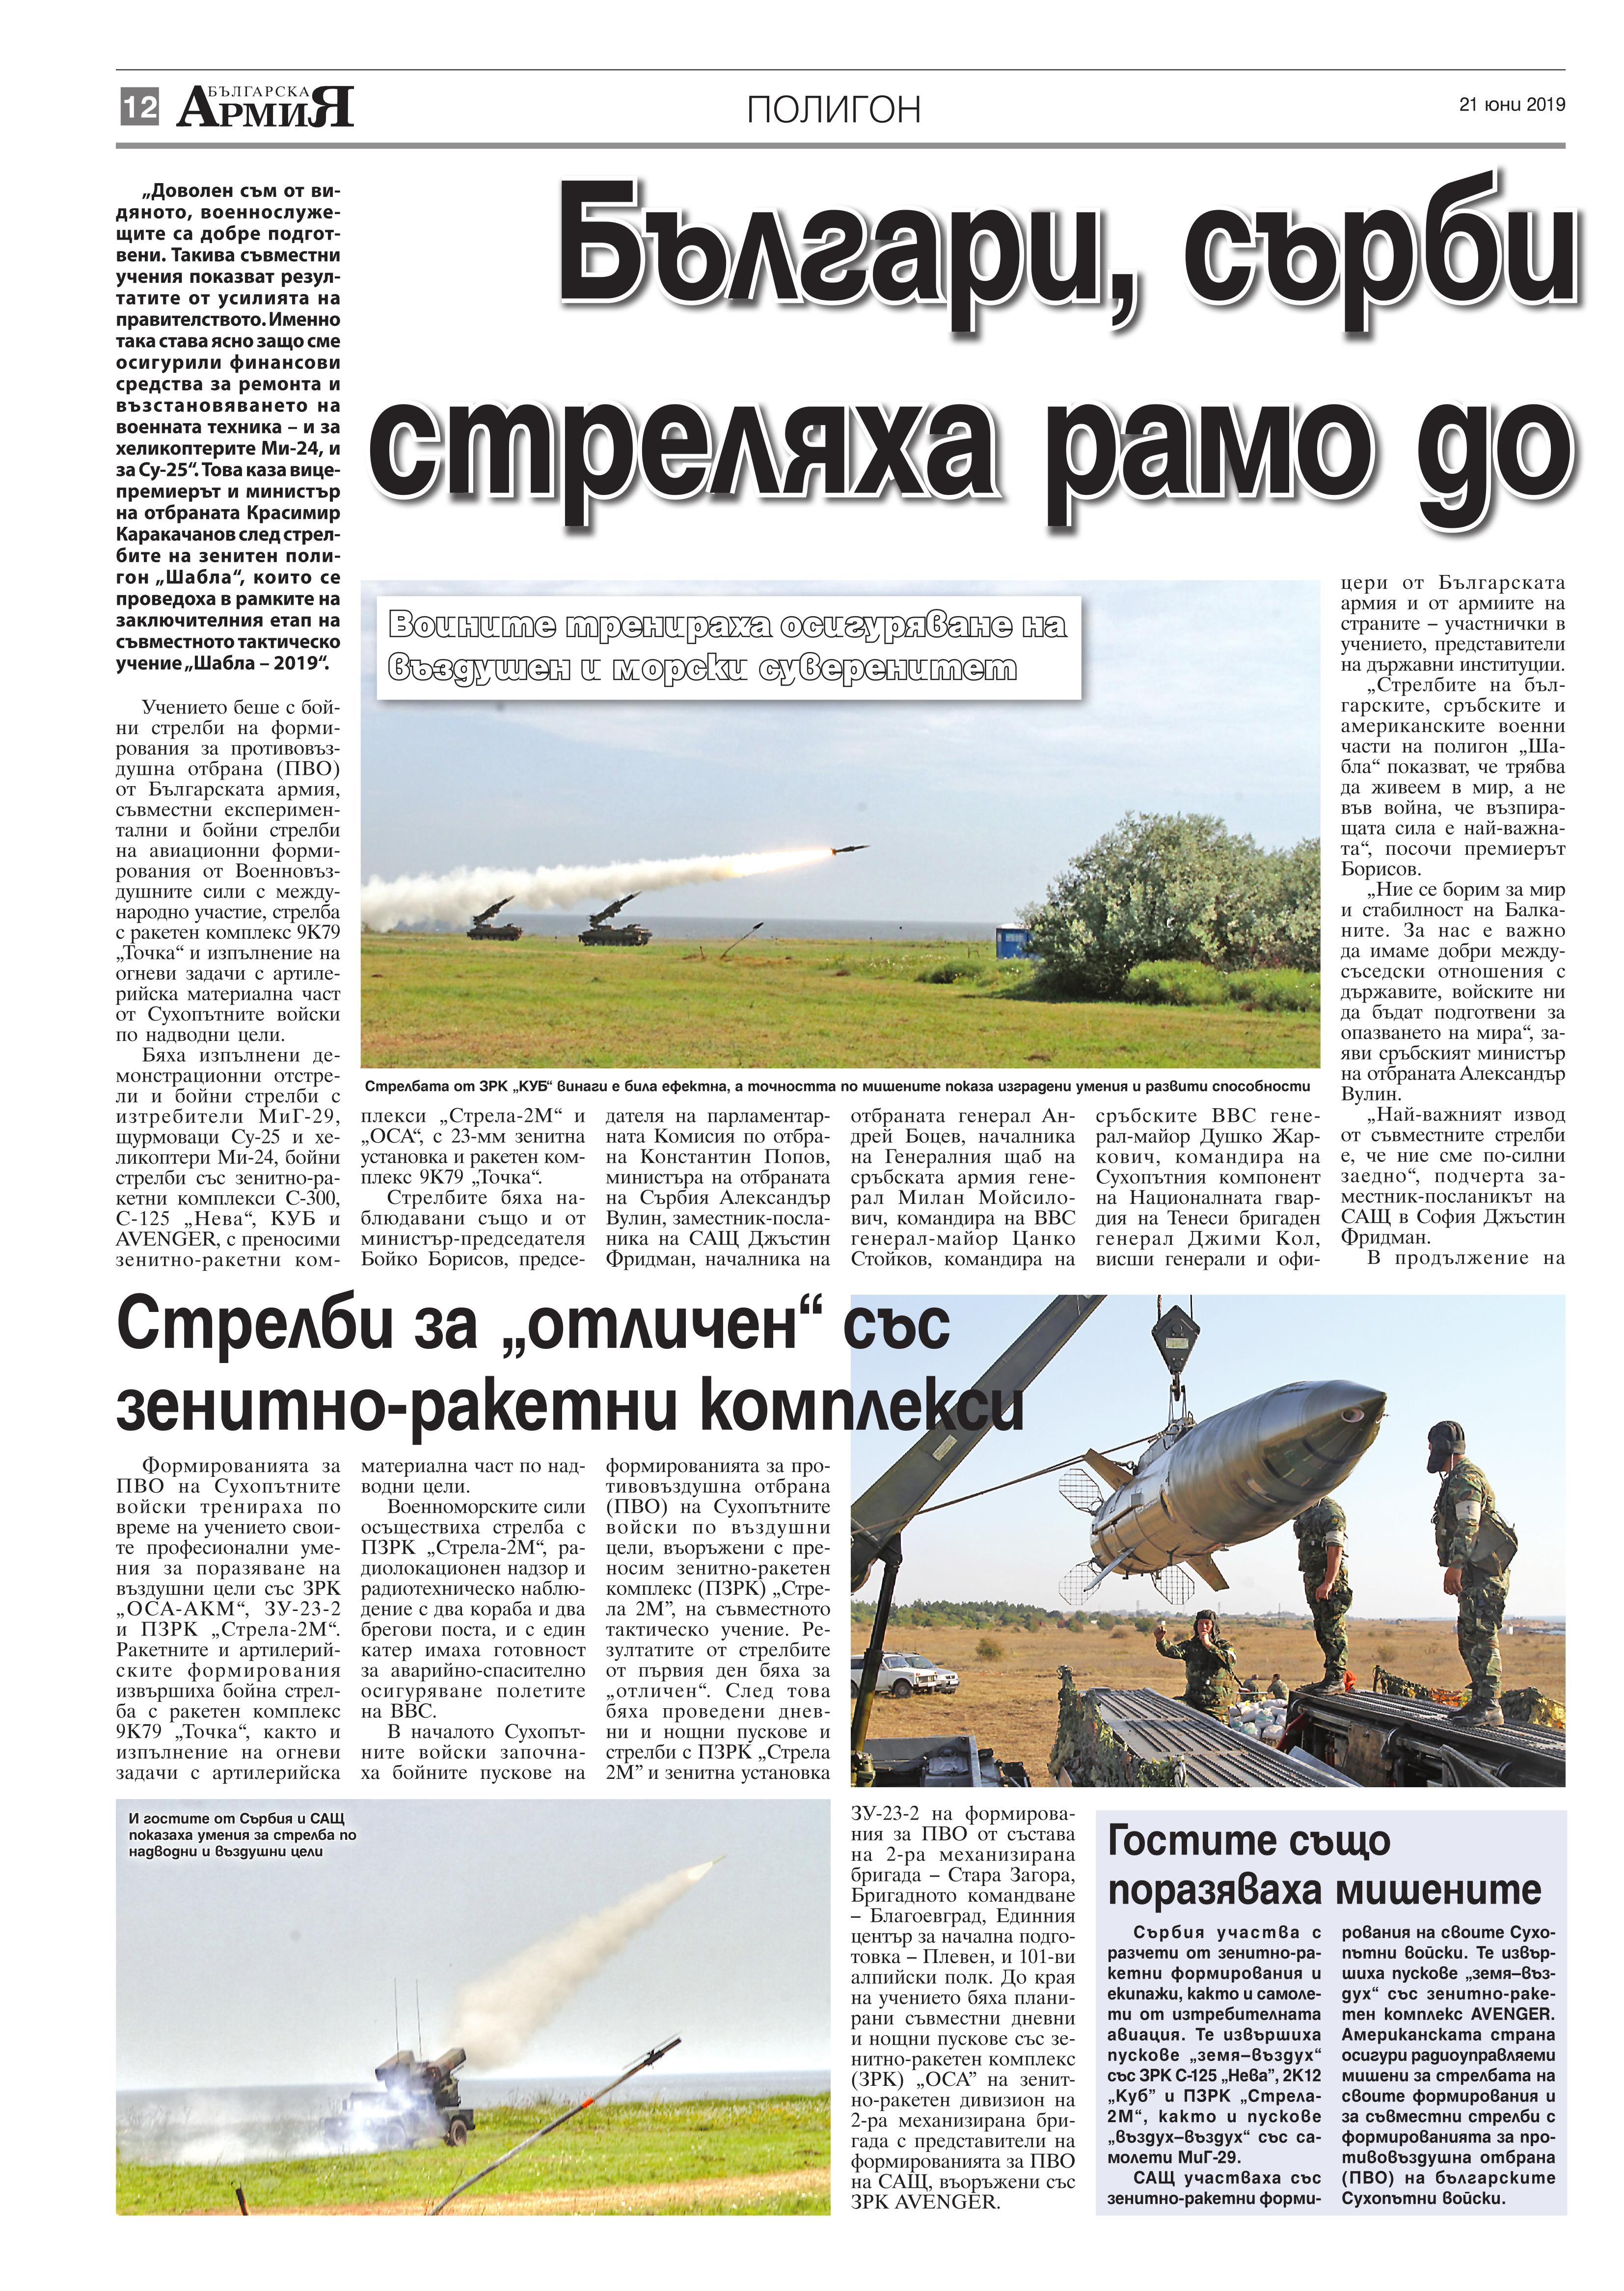 https://www.armymedia.bg/wp-content/uploads/2015/06/12.page1_-99.jpg